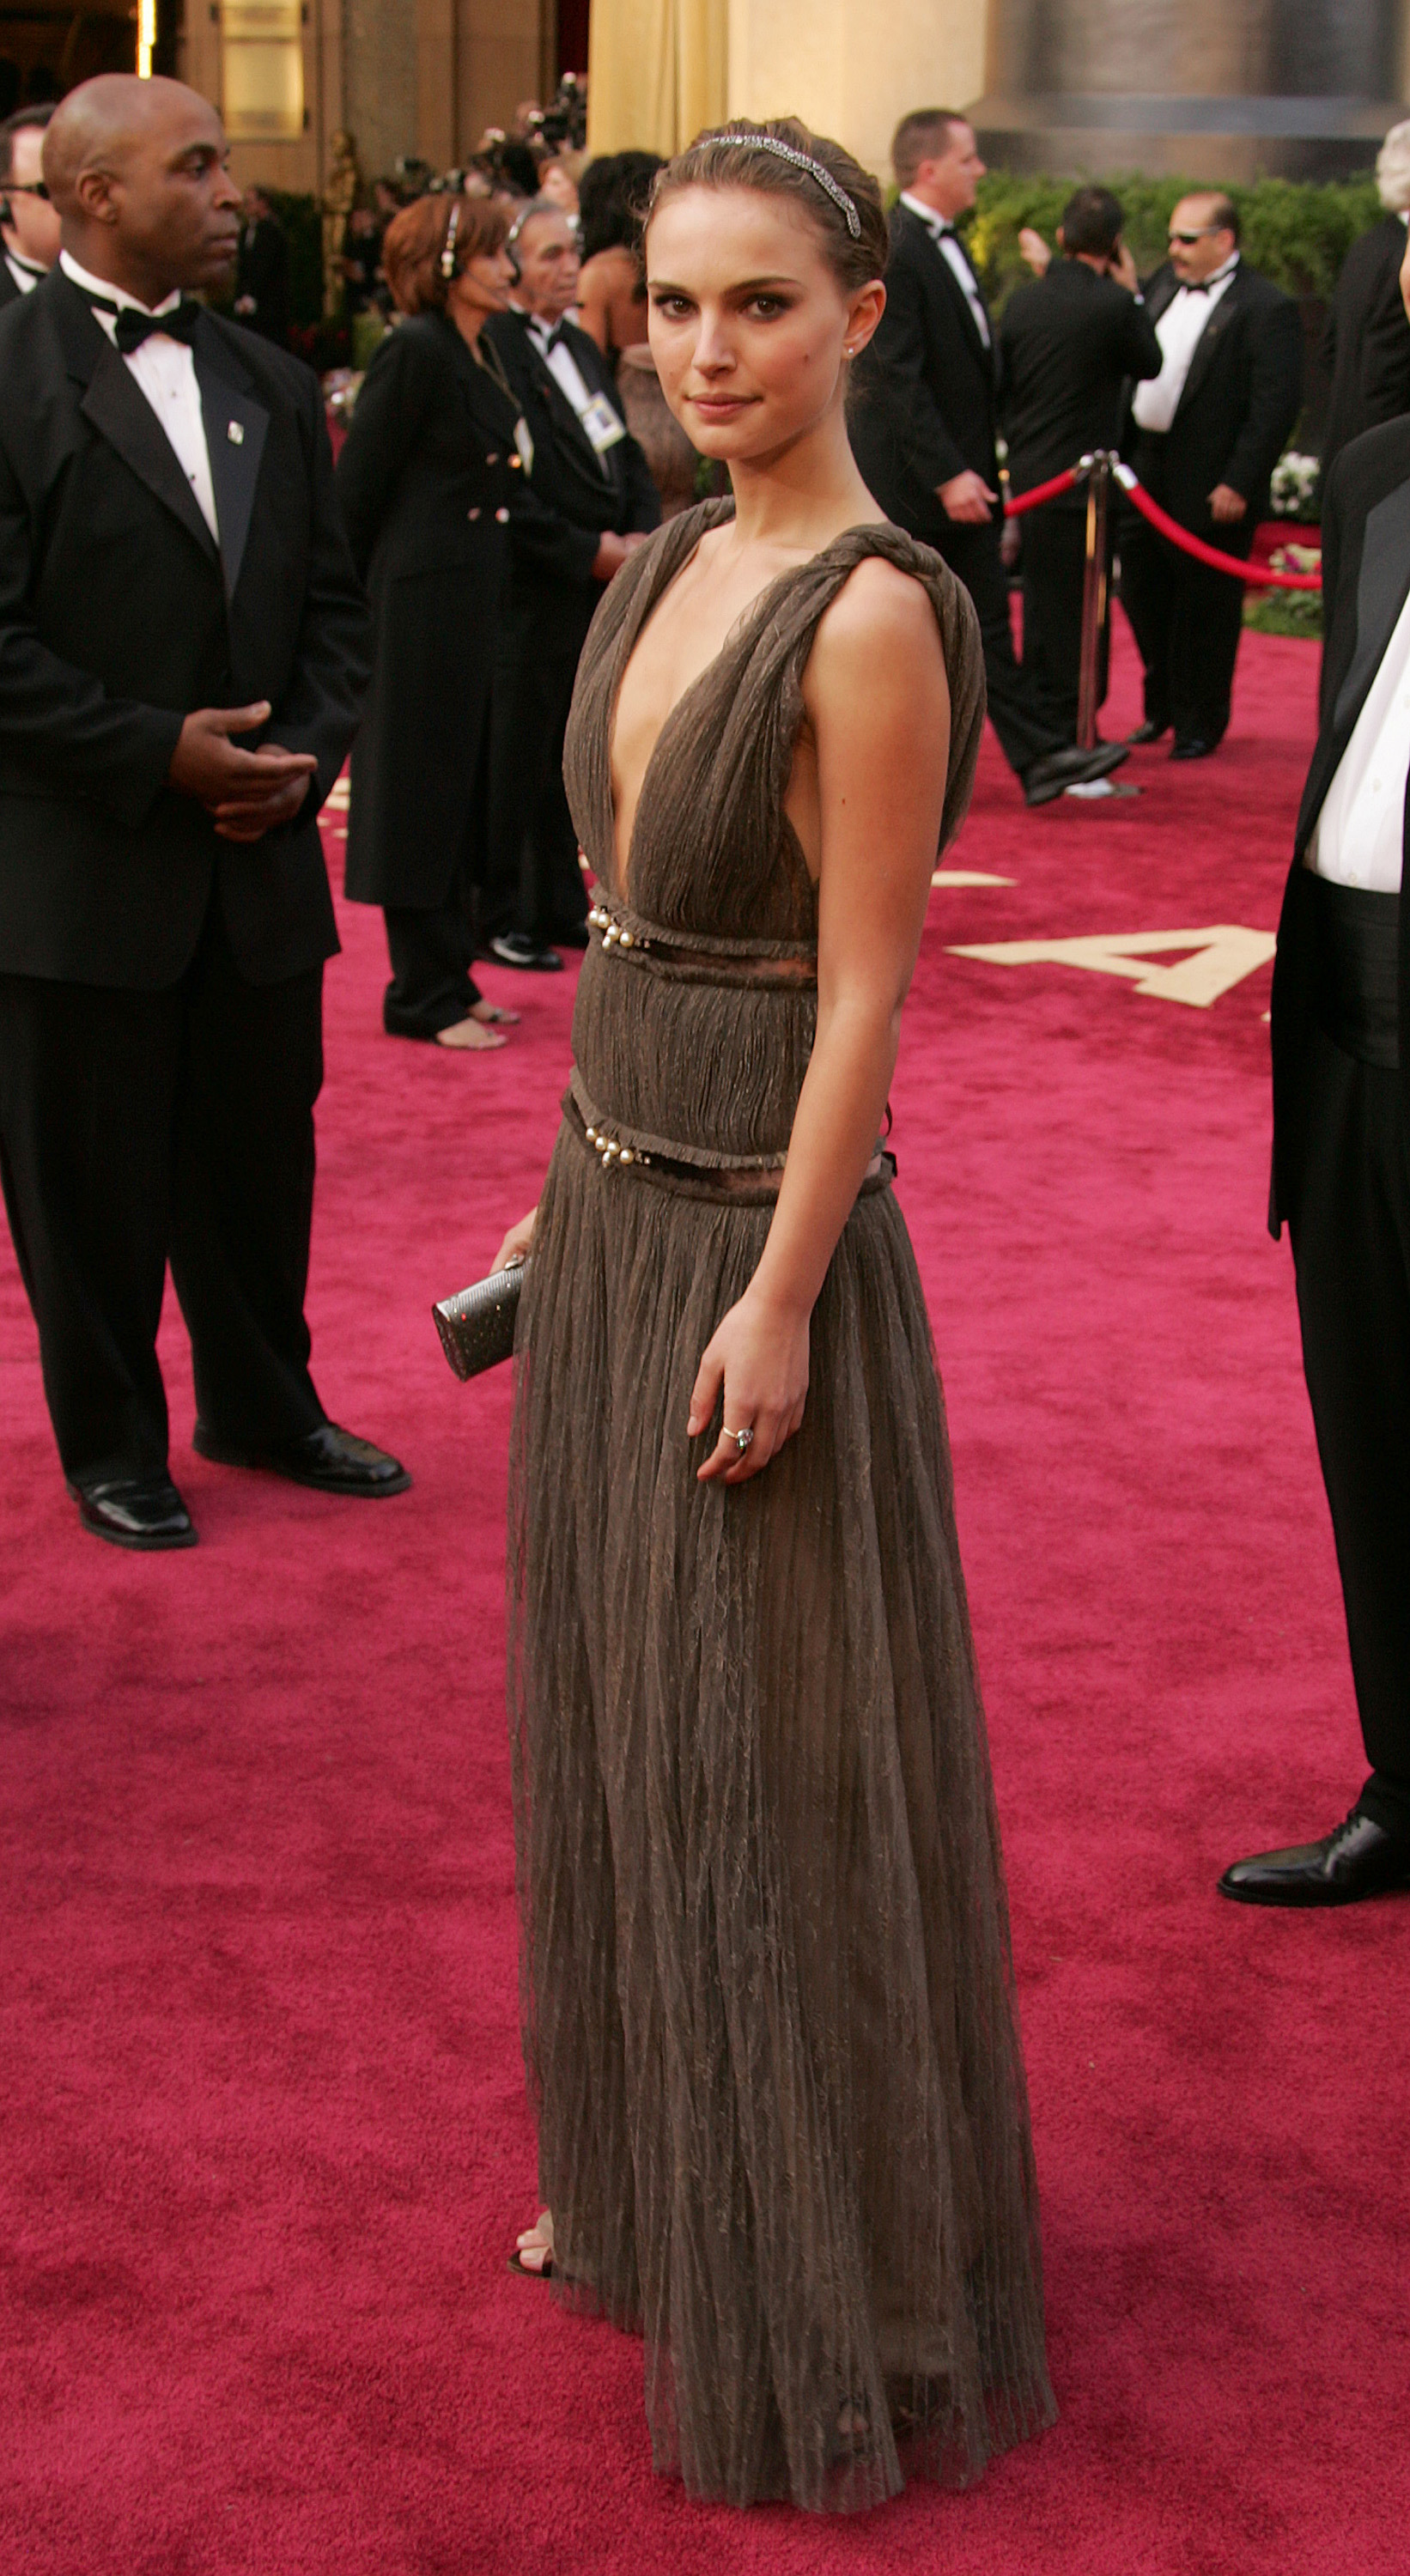 You Need To See These Pics Of Natalie Portman At Her First